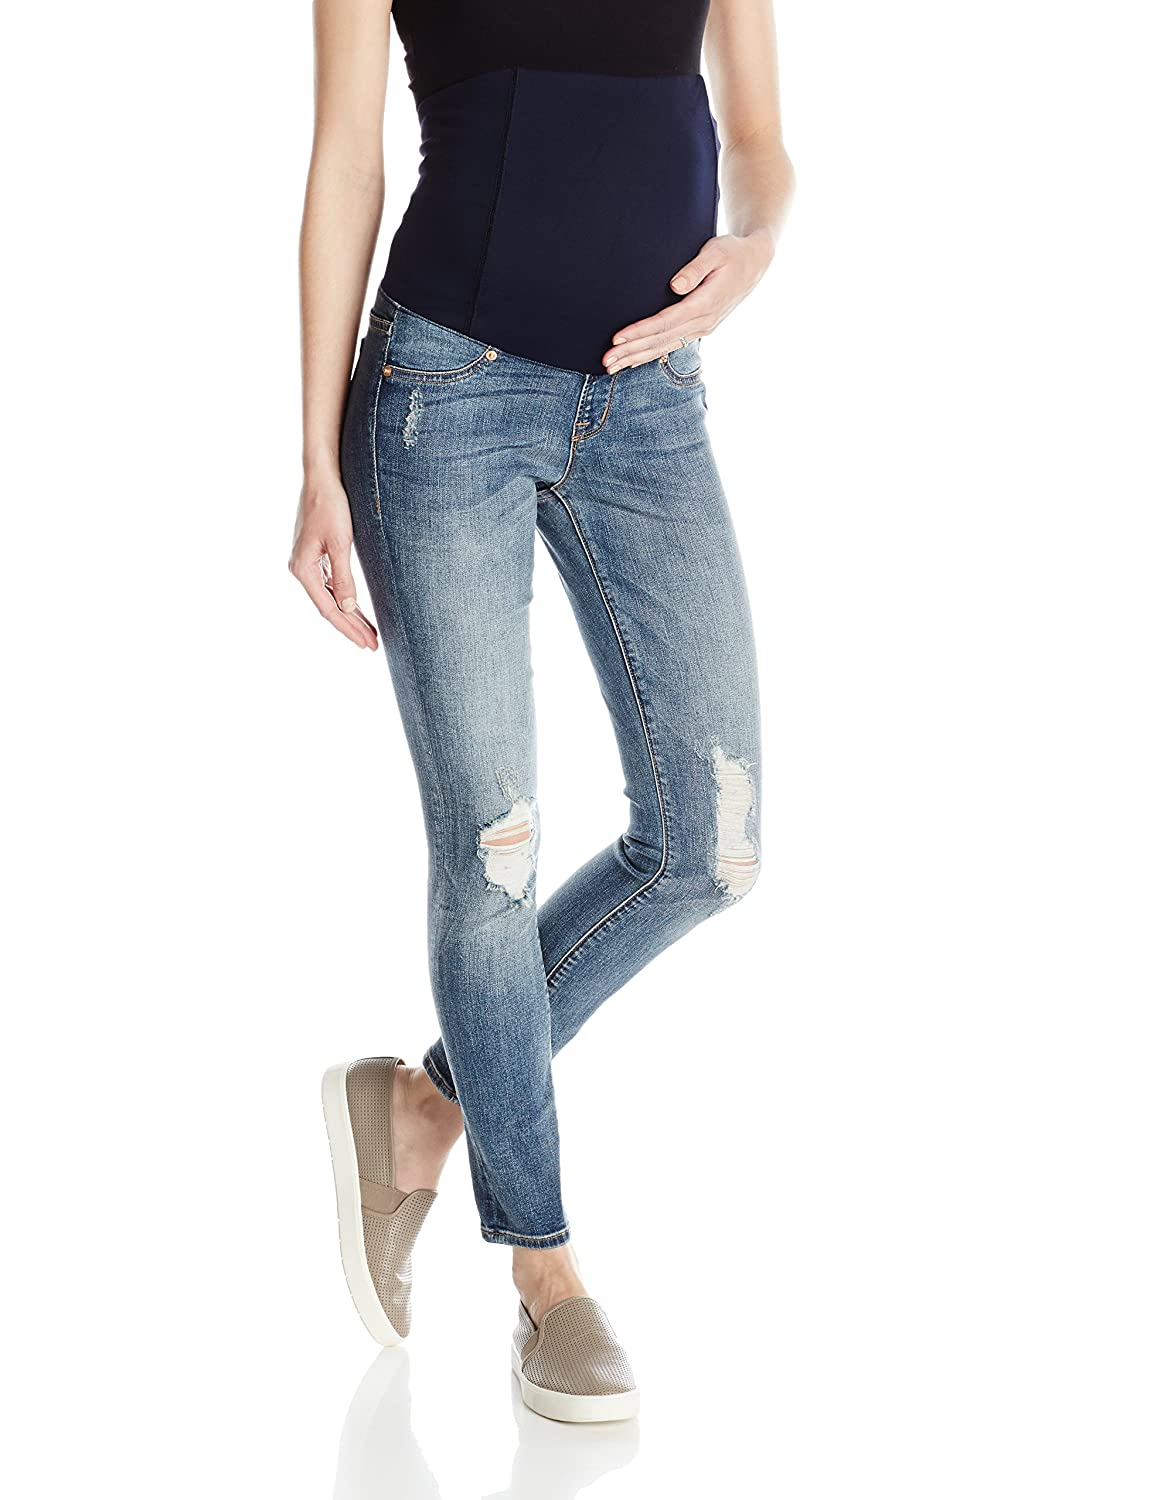 Ingrid & Isabel Womens Maternity Sasha Skinny Jean with Crossover Panel 1351MD